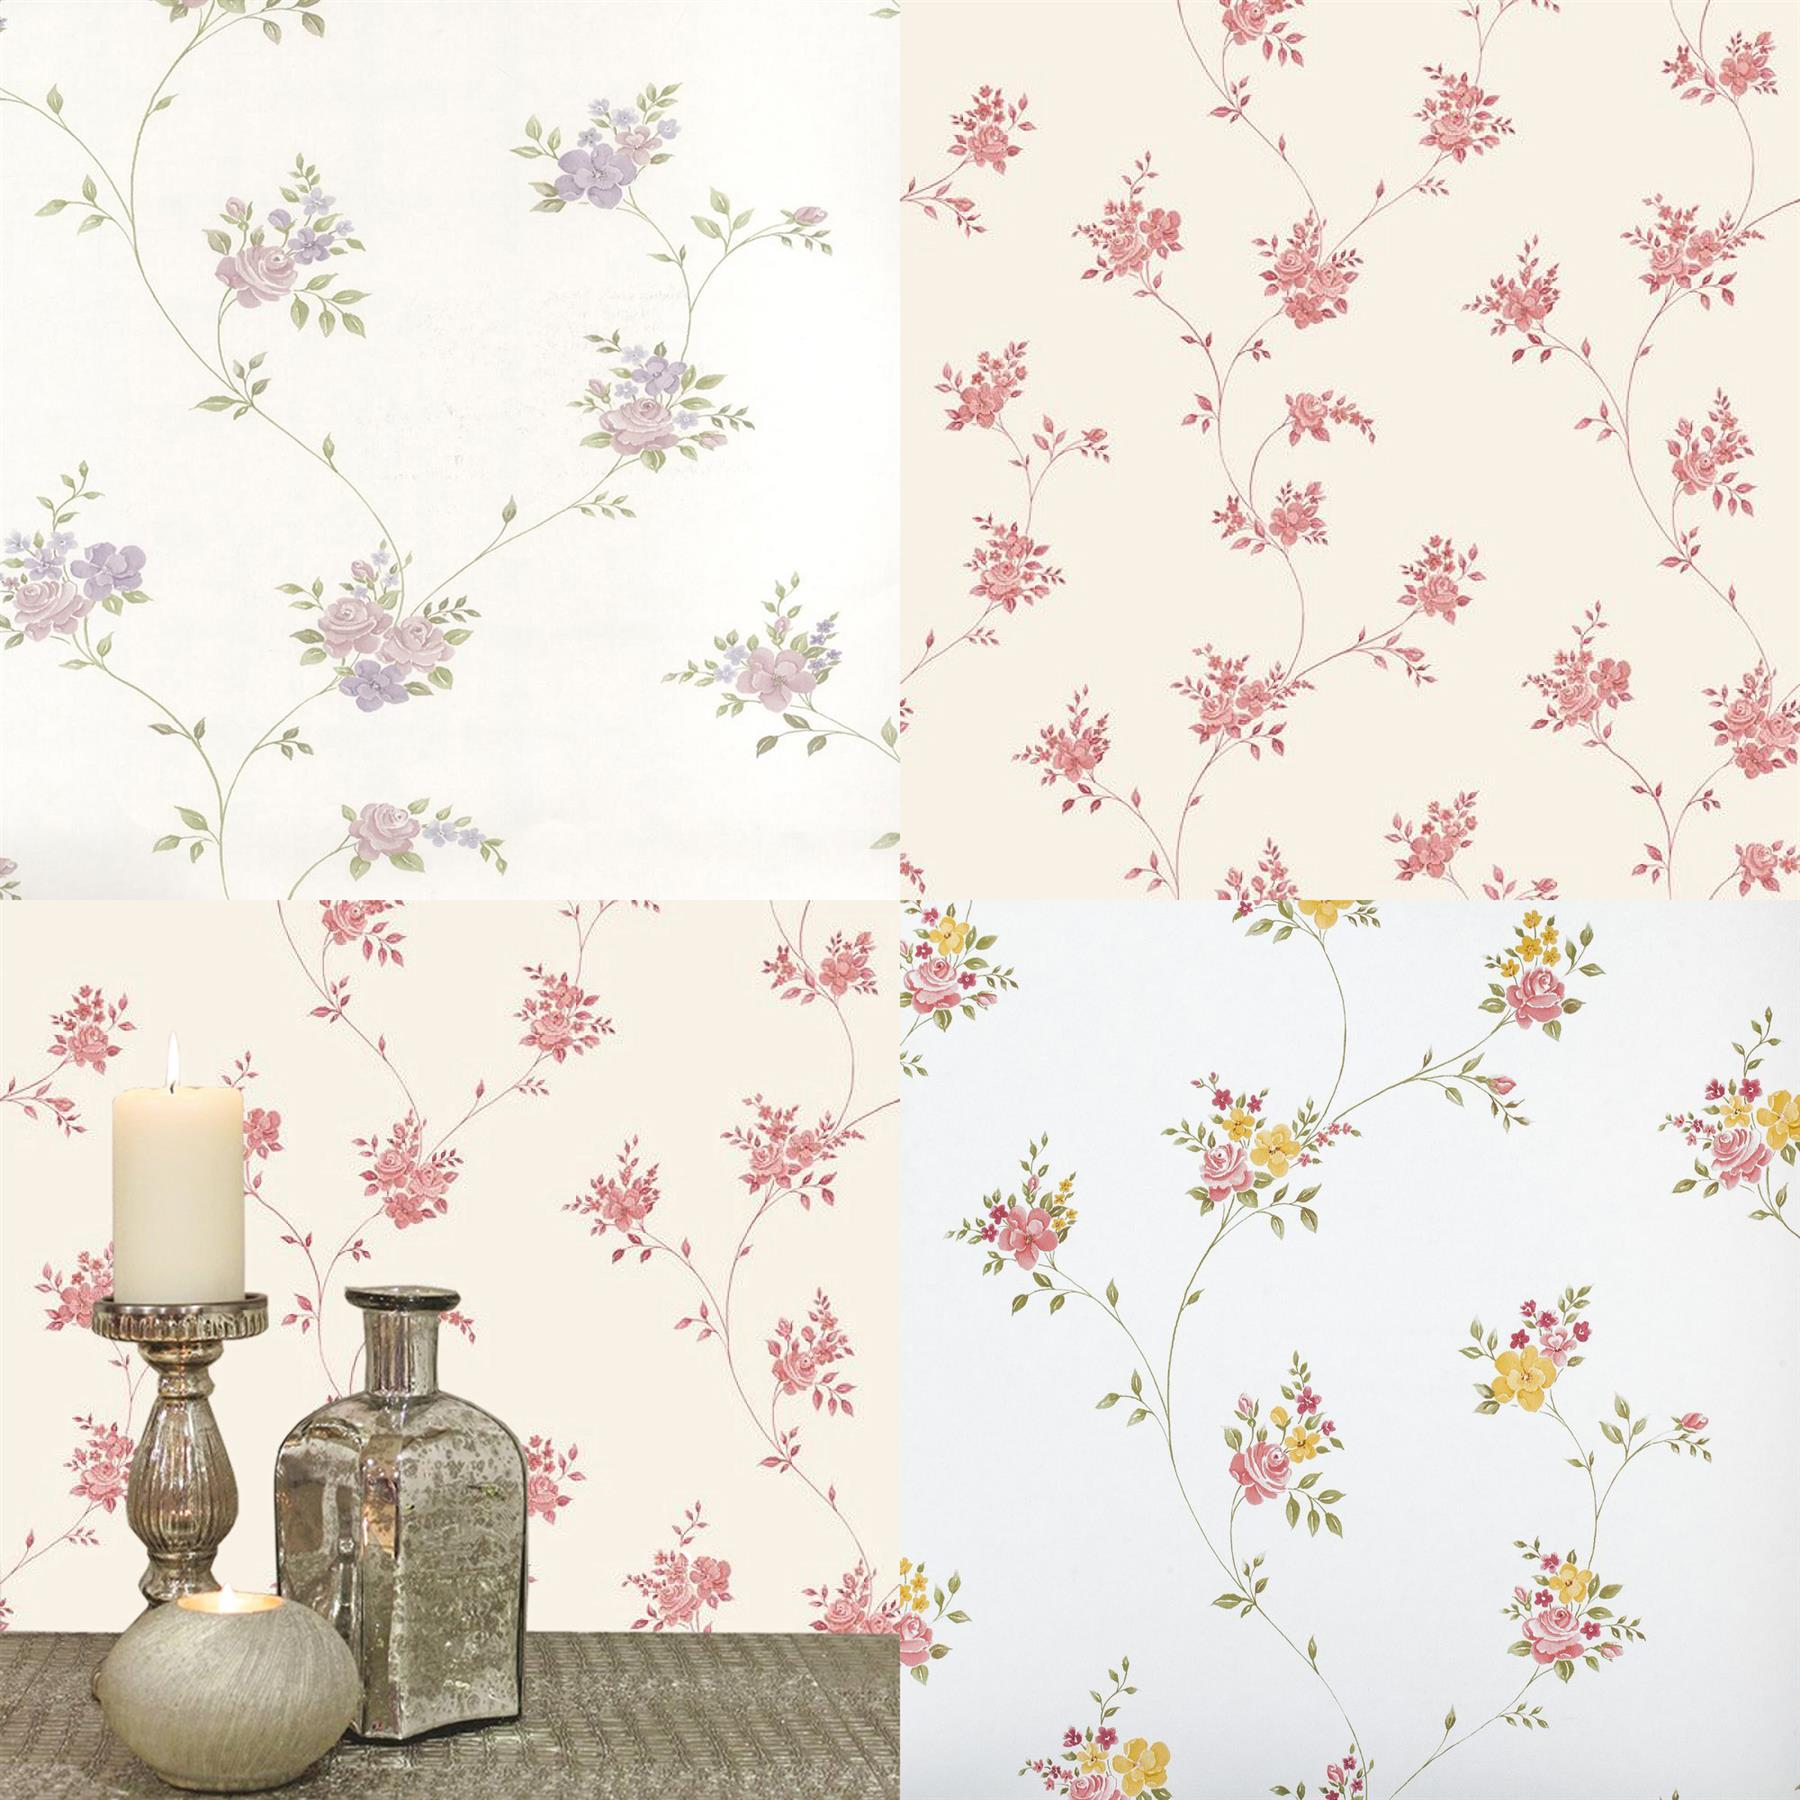 Floral Trail Wallpaper Flowers Pink Lilac Red White Beige Vintage